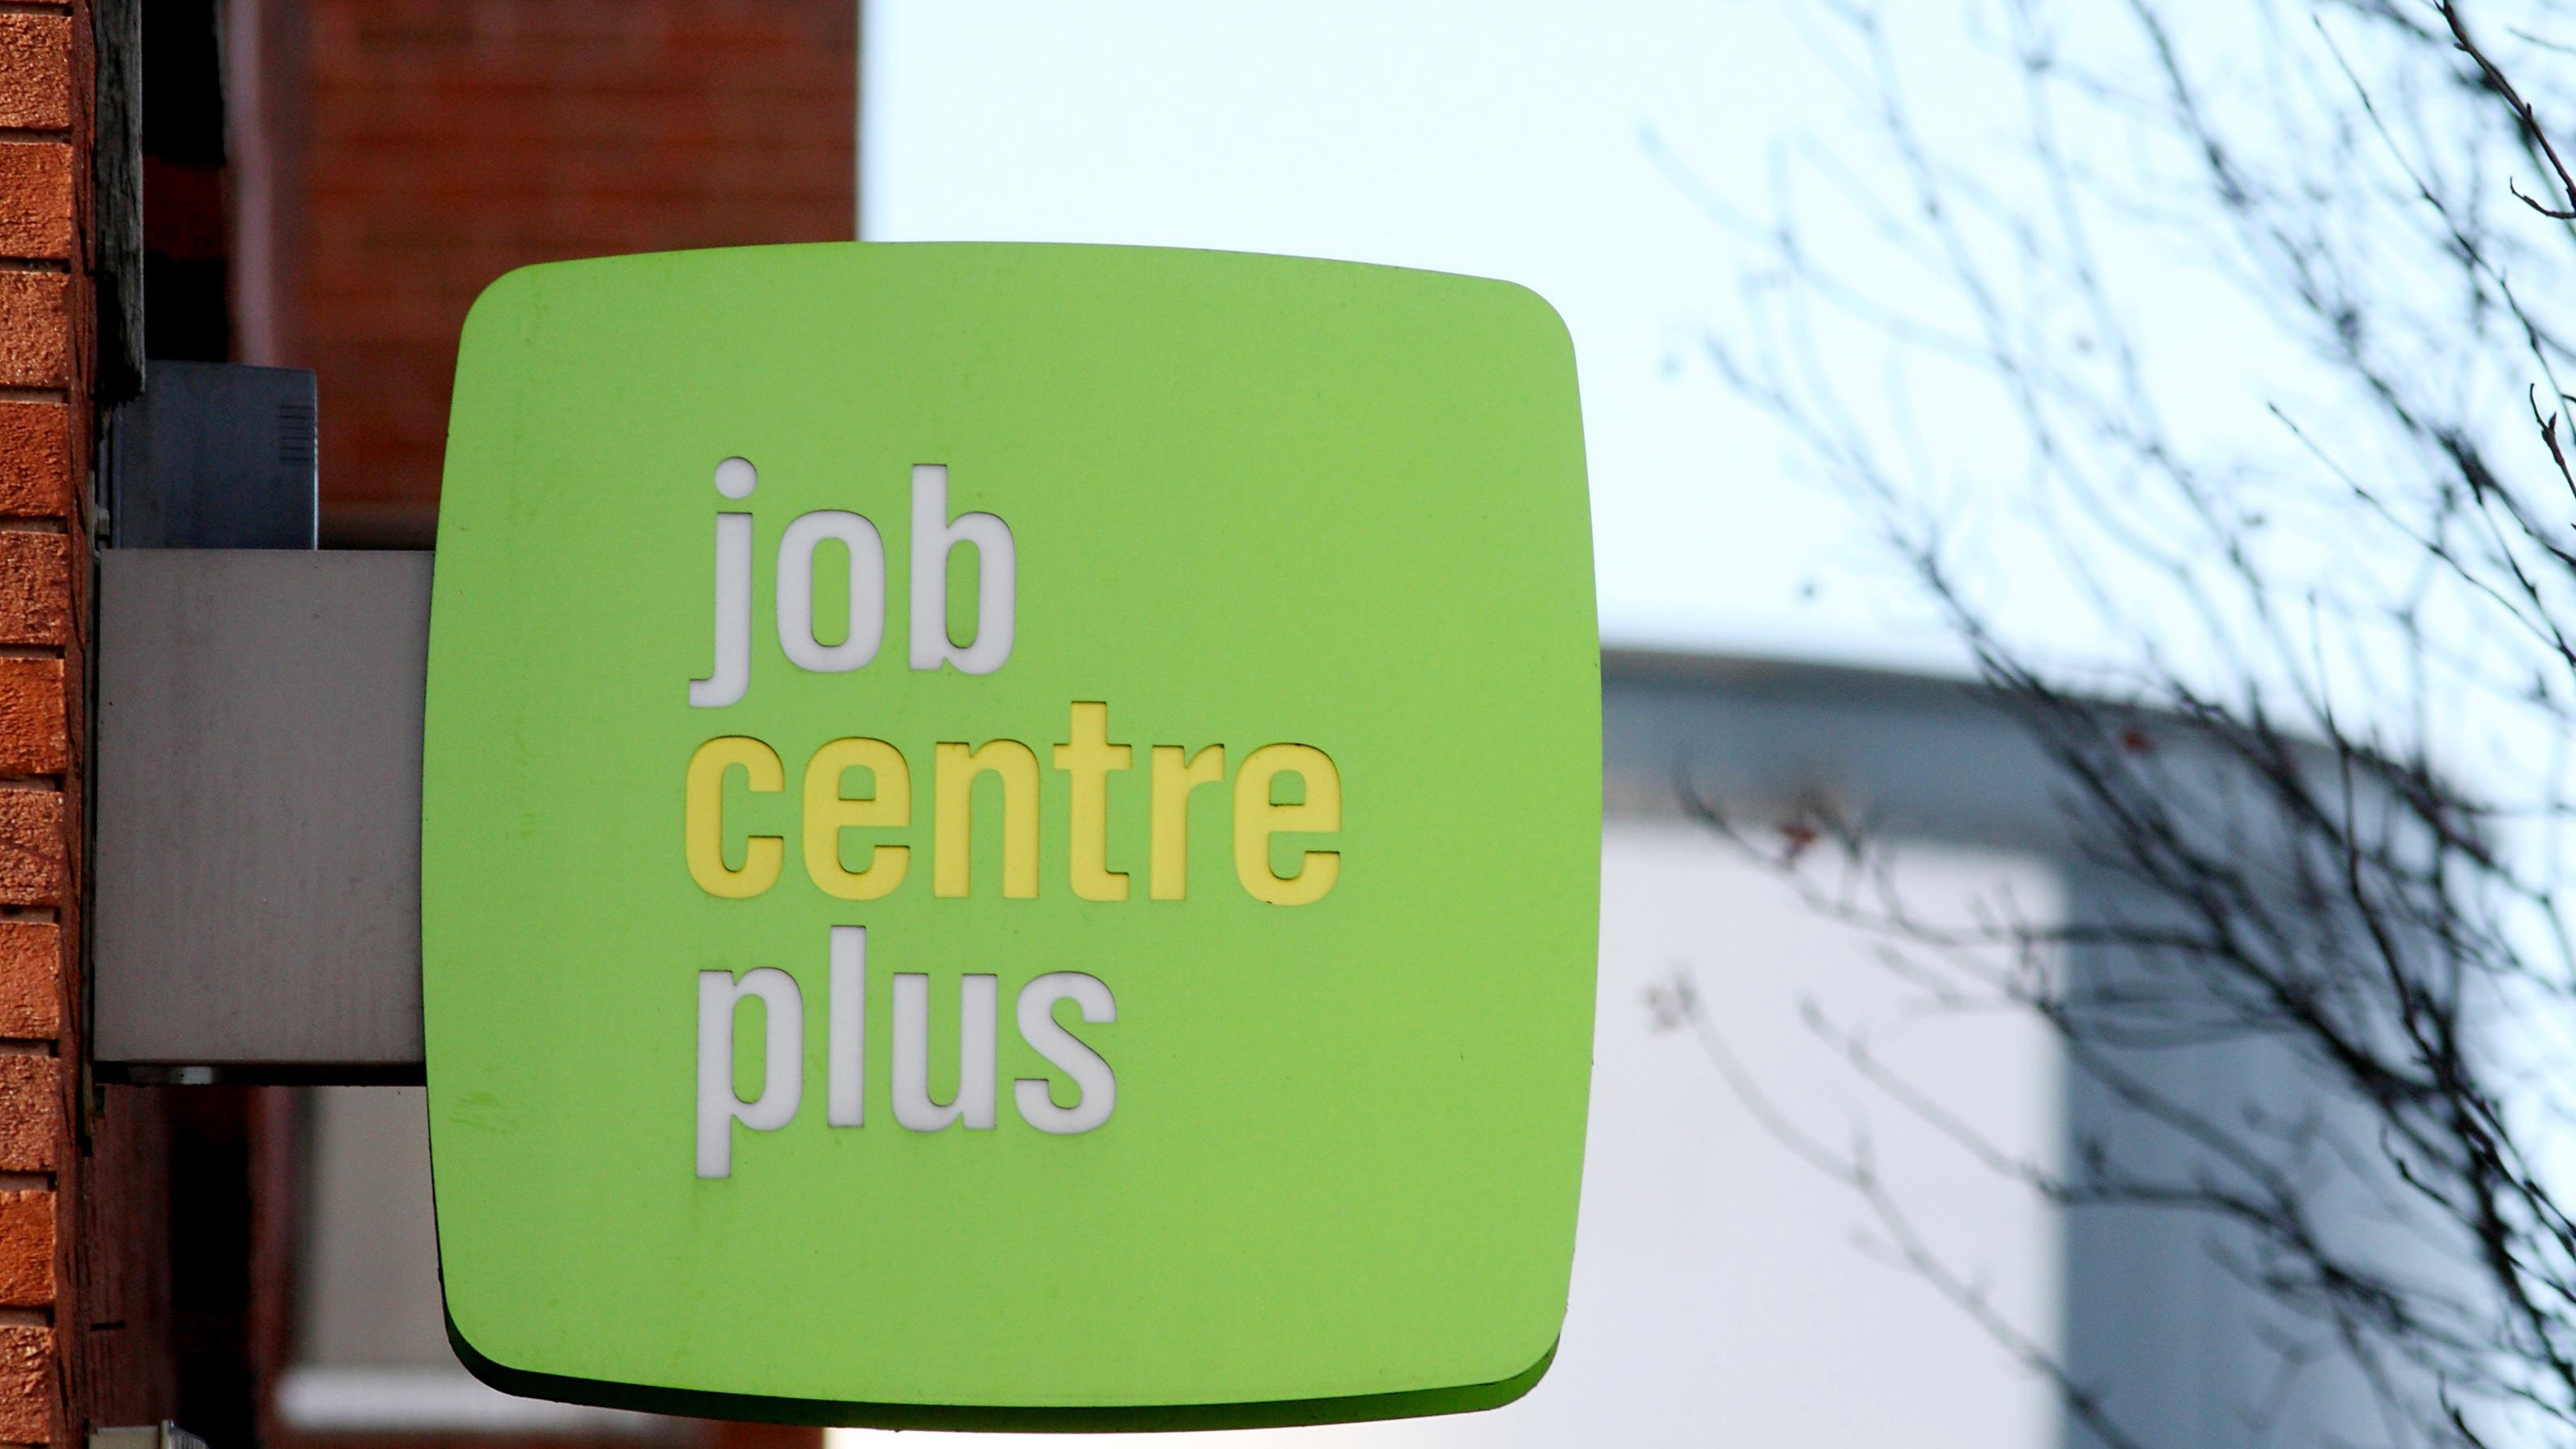 Unemployment in the East of England is the lowest in the country